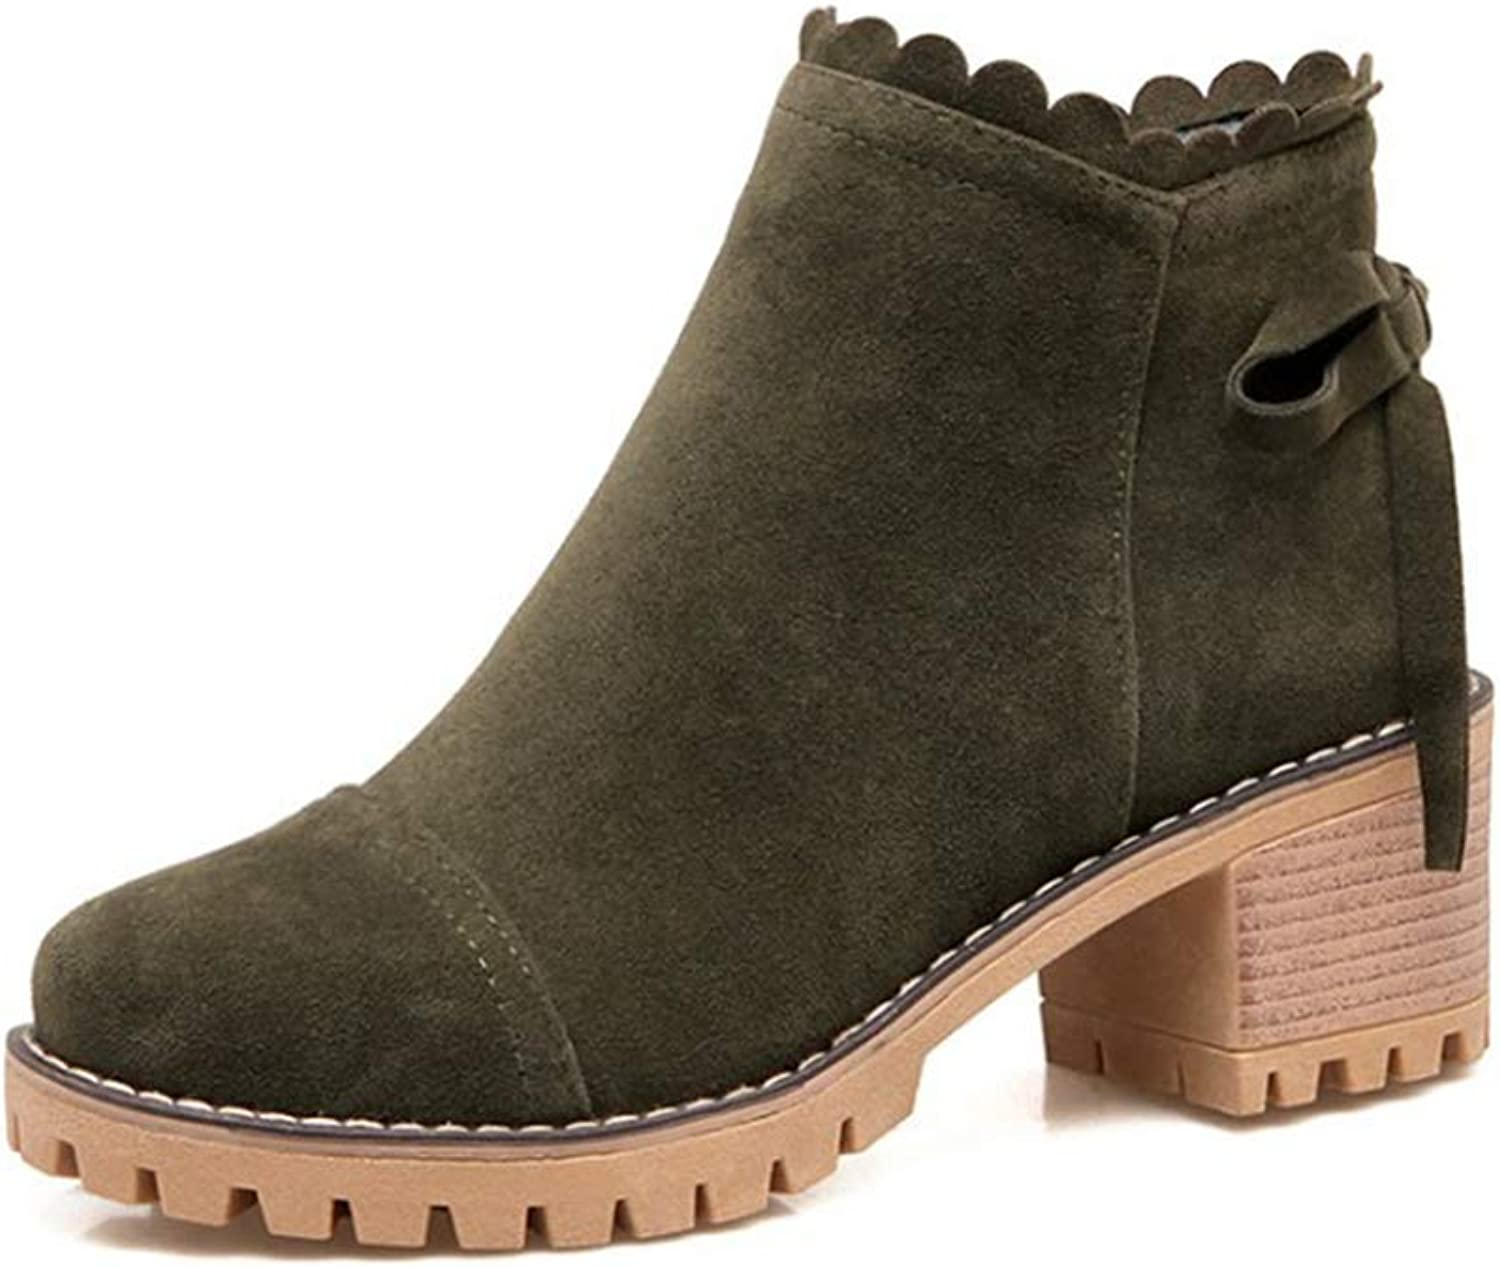 York Zhu Women Boots,Non-Slip Round Head Thick Heels Short Ancle Boots Leisure shoes